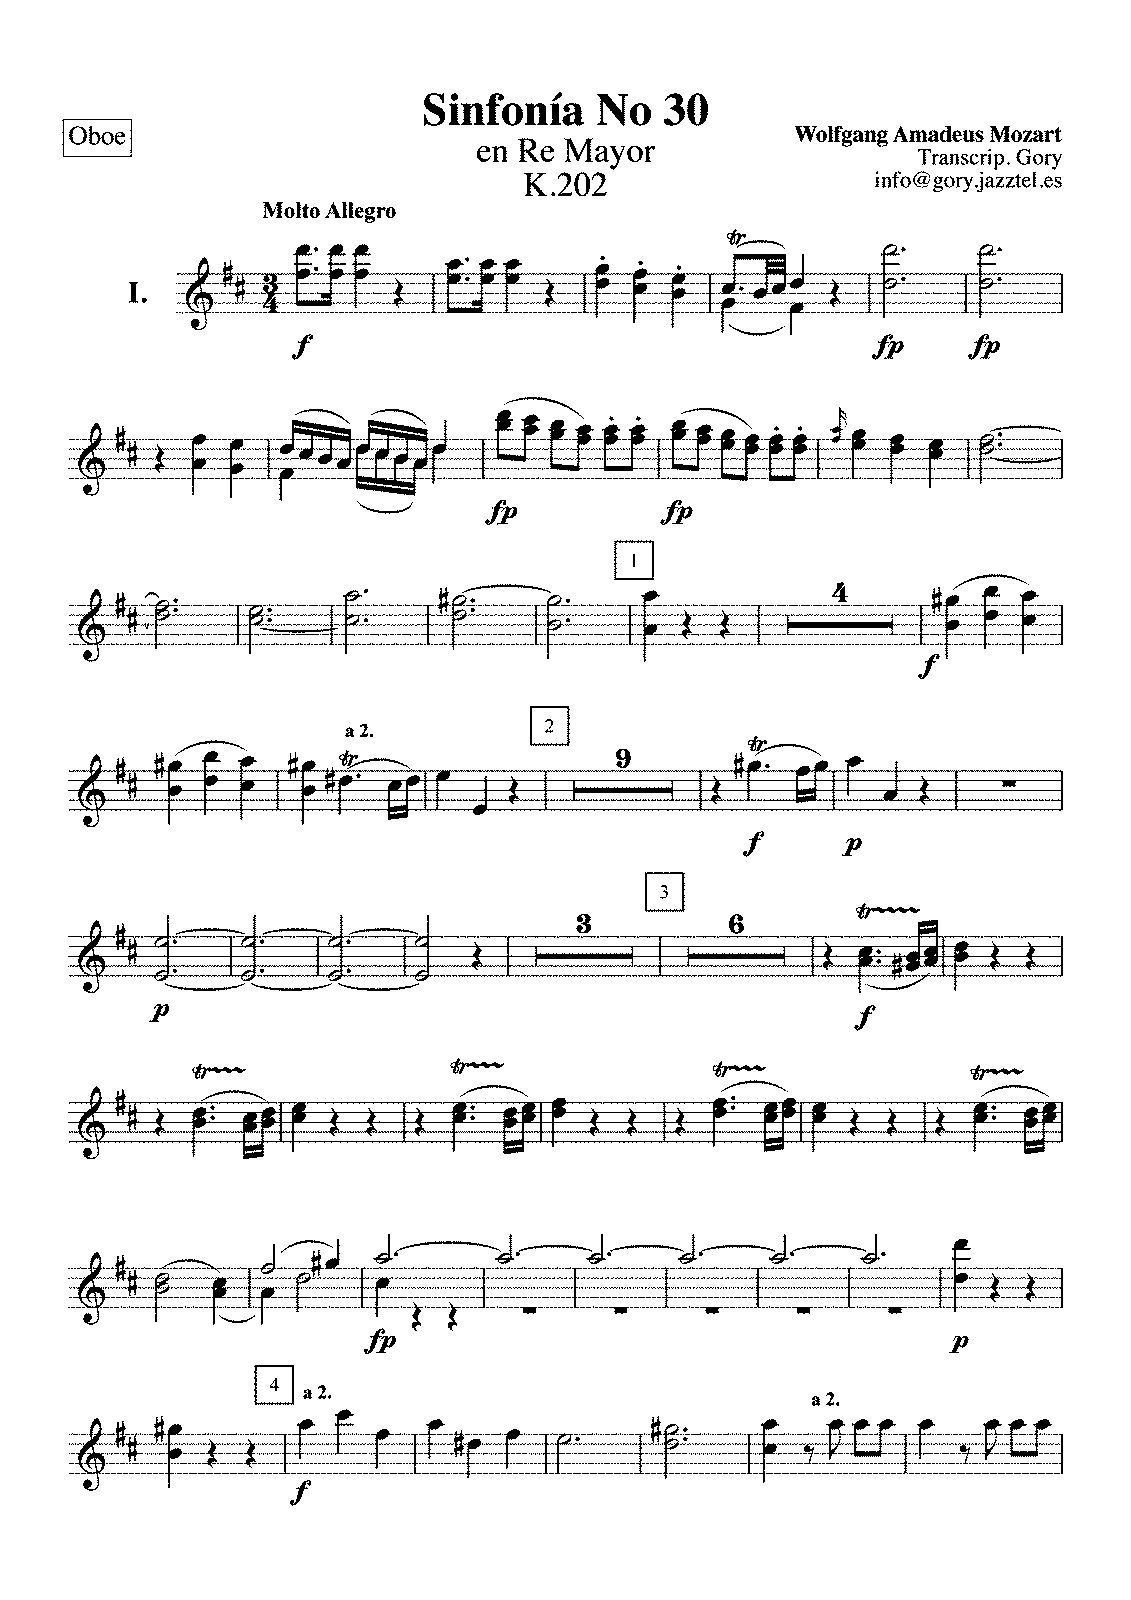 PMLP01556-Sinfonia nº 30 en Re mayor - Oboe.pdf